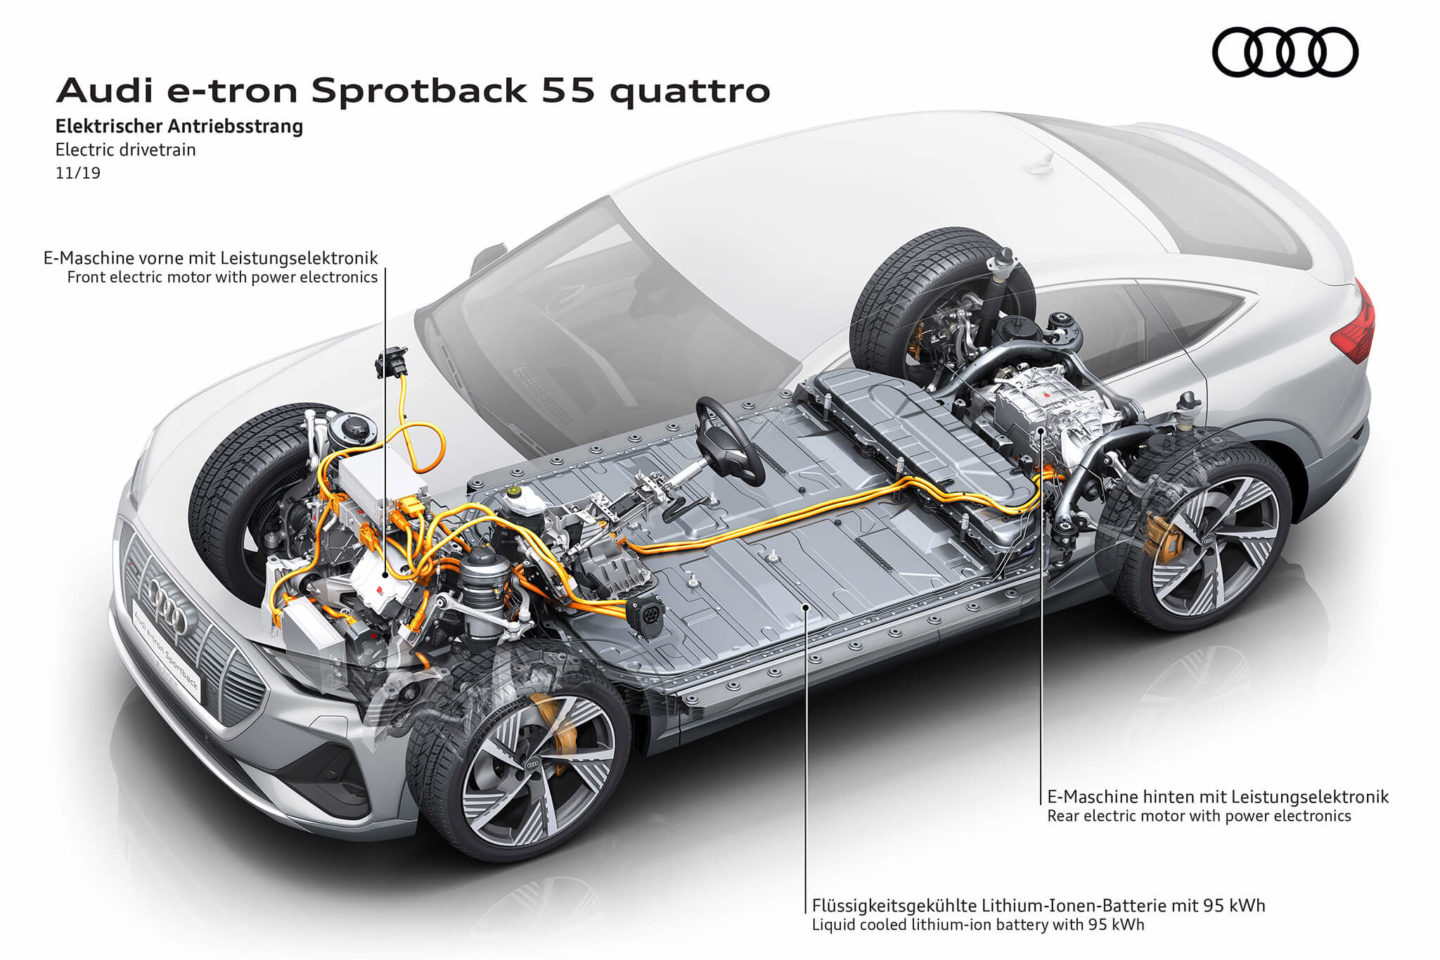 Layout do Audi e-tron sportback 55 quattro